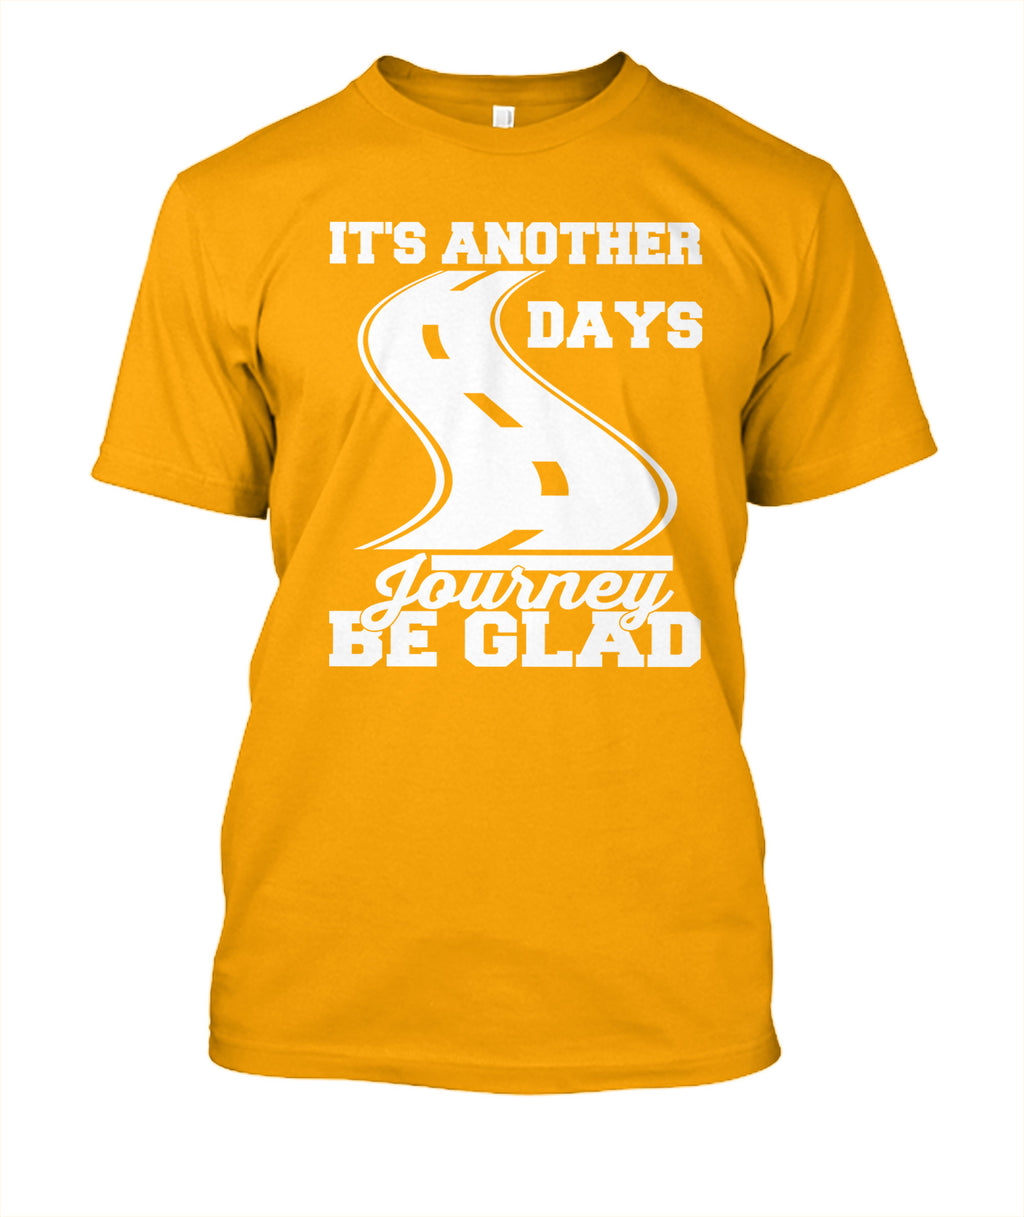 It's Another Days Journey Be Glad T-Shirt